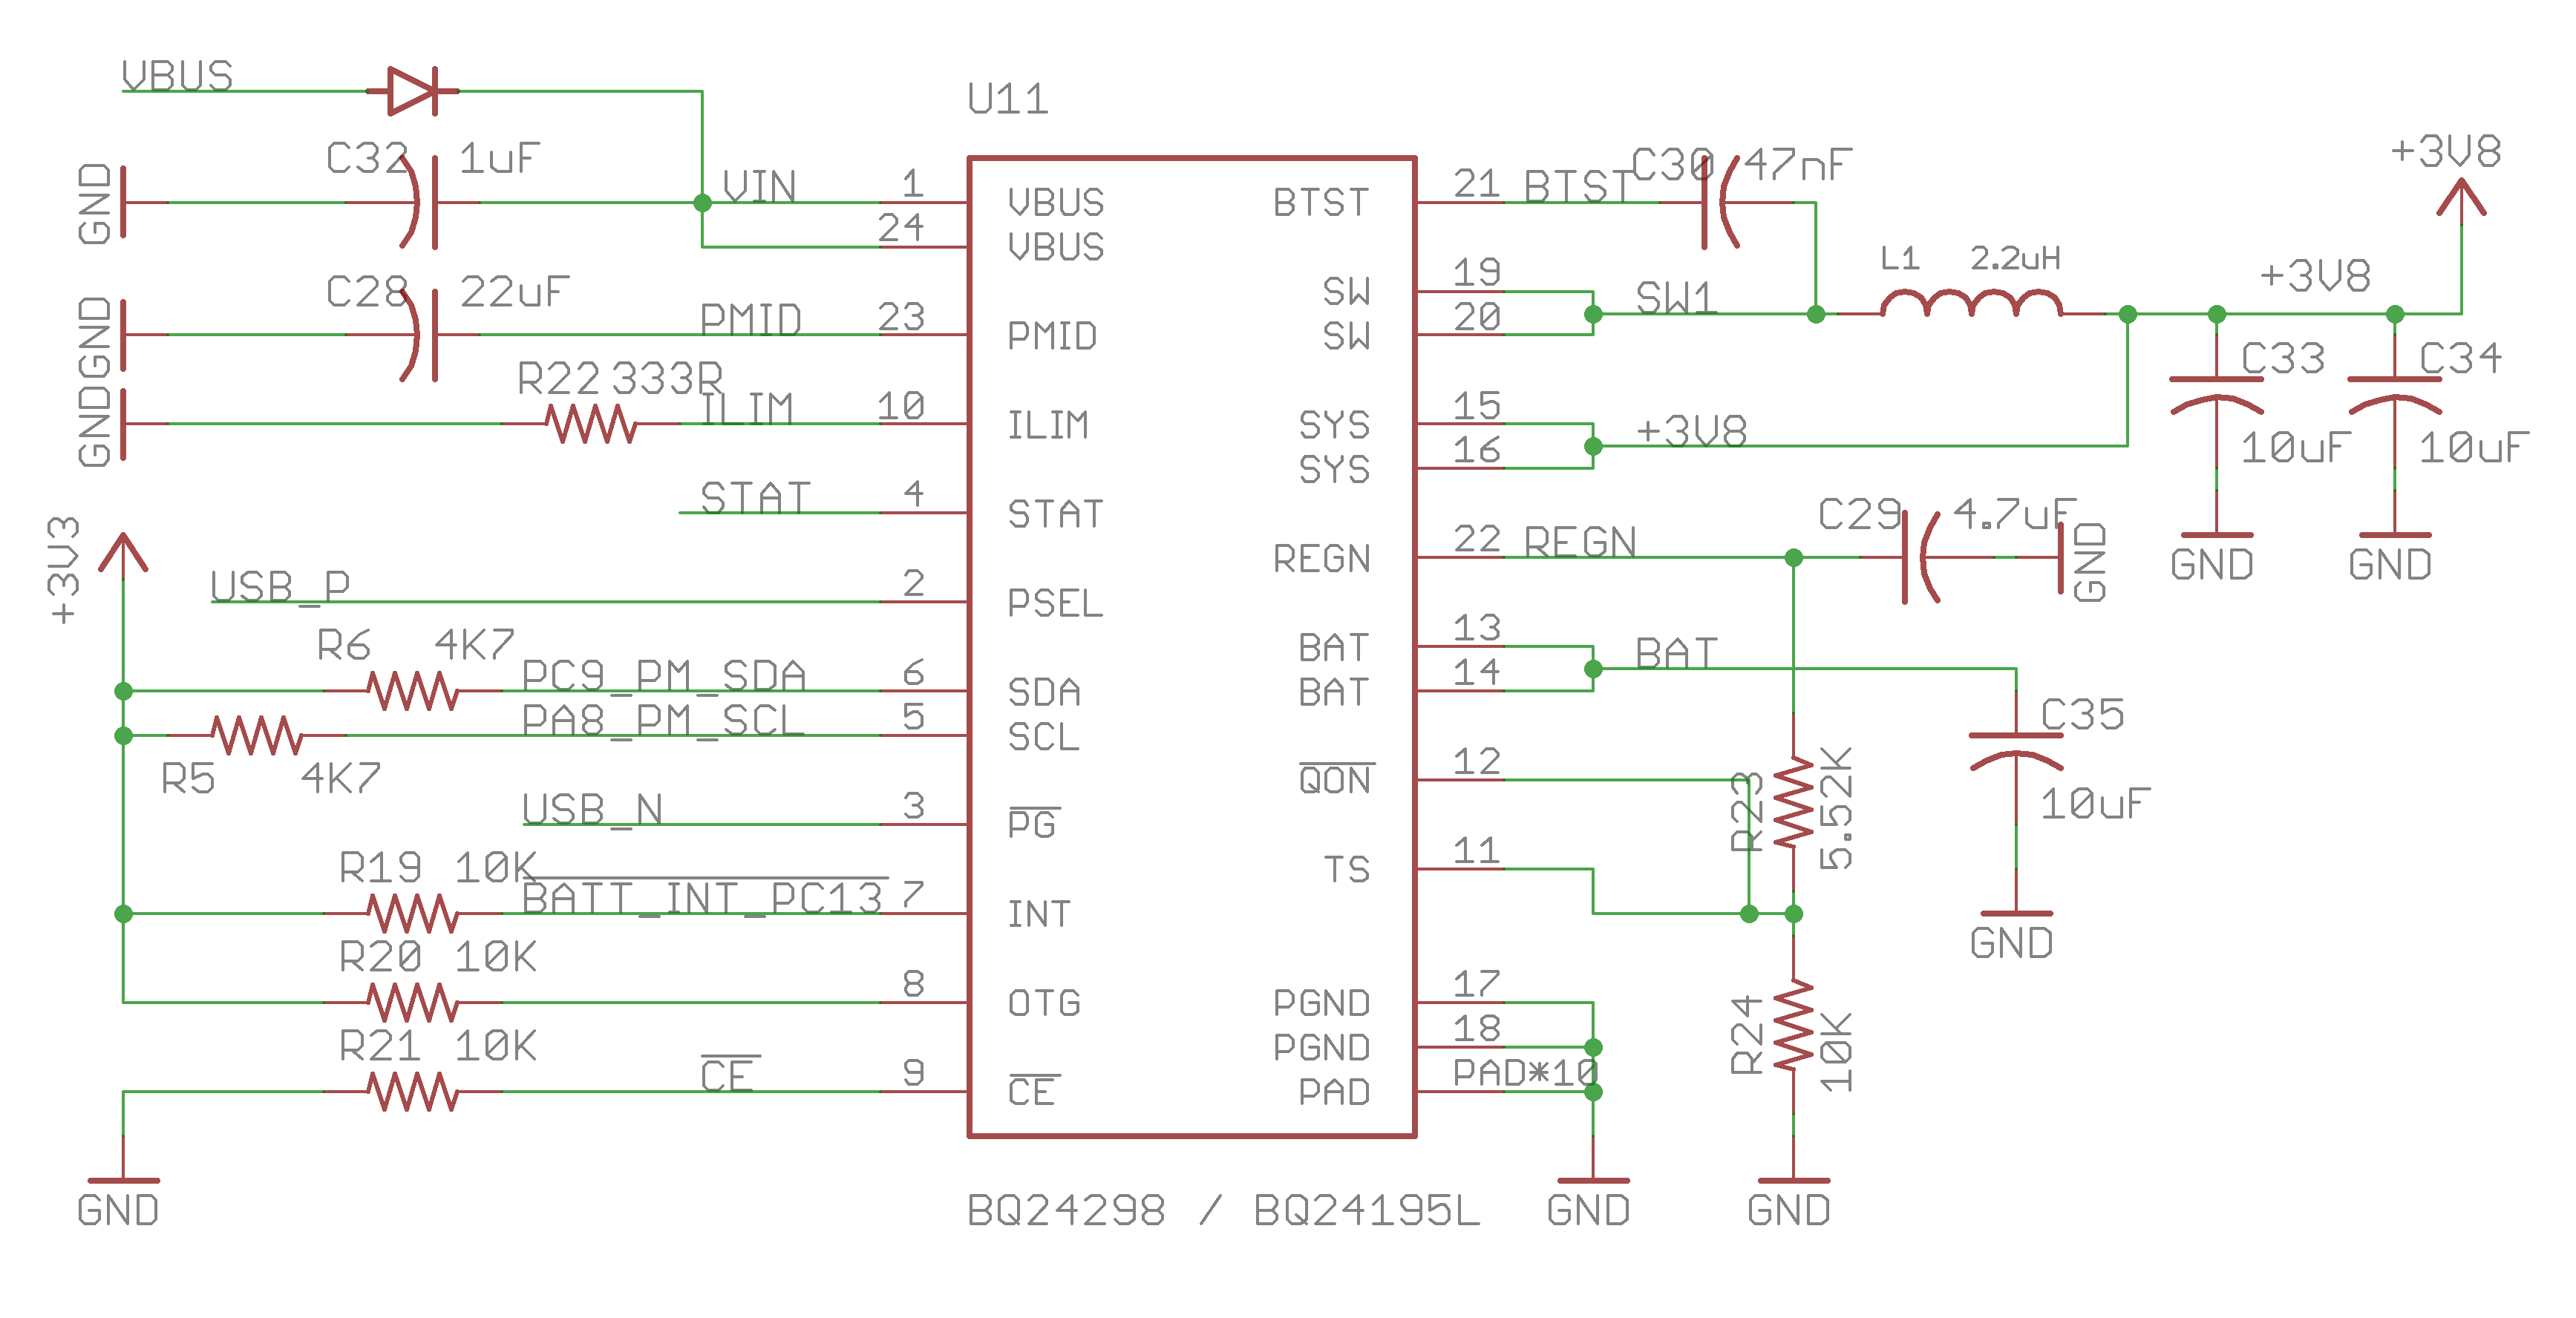 Particle Datasheets E Series Datasheet Serie And Parallel Circuit The Uses Tis Bq24195 As Power Management Charging Unit This Pmic Intelligently Sources From Either Vin Pin Usb Port Or